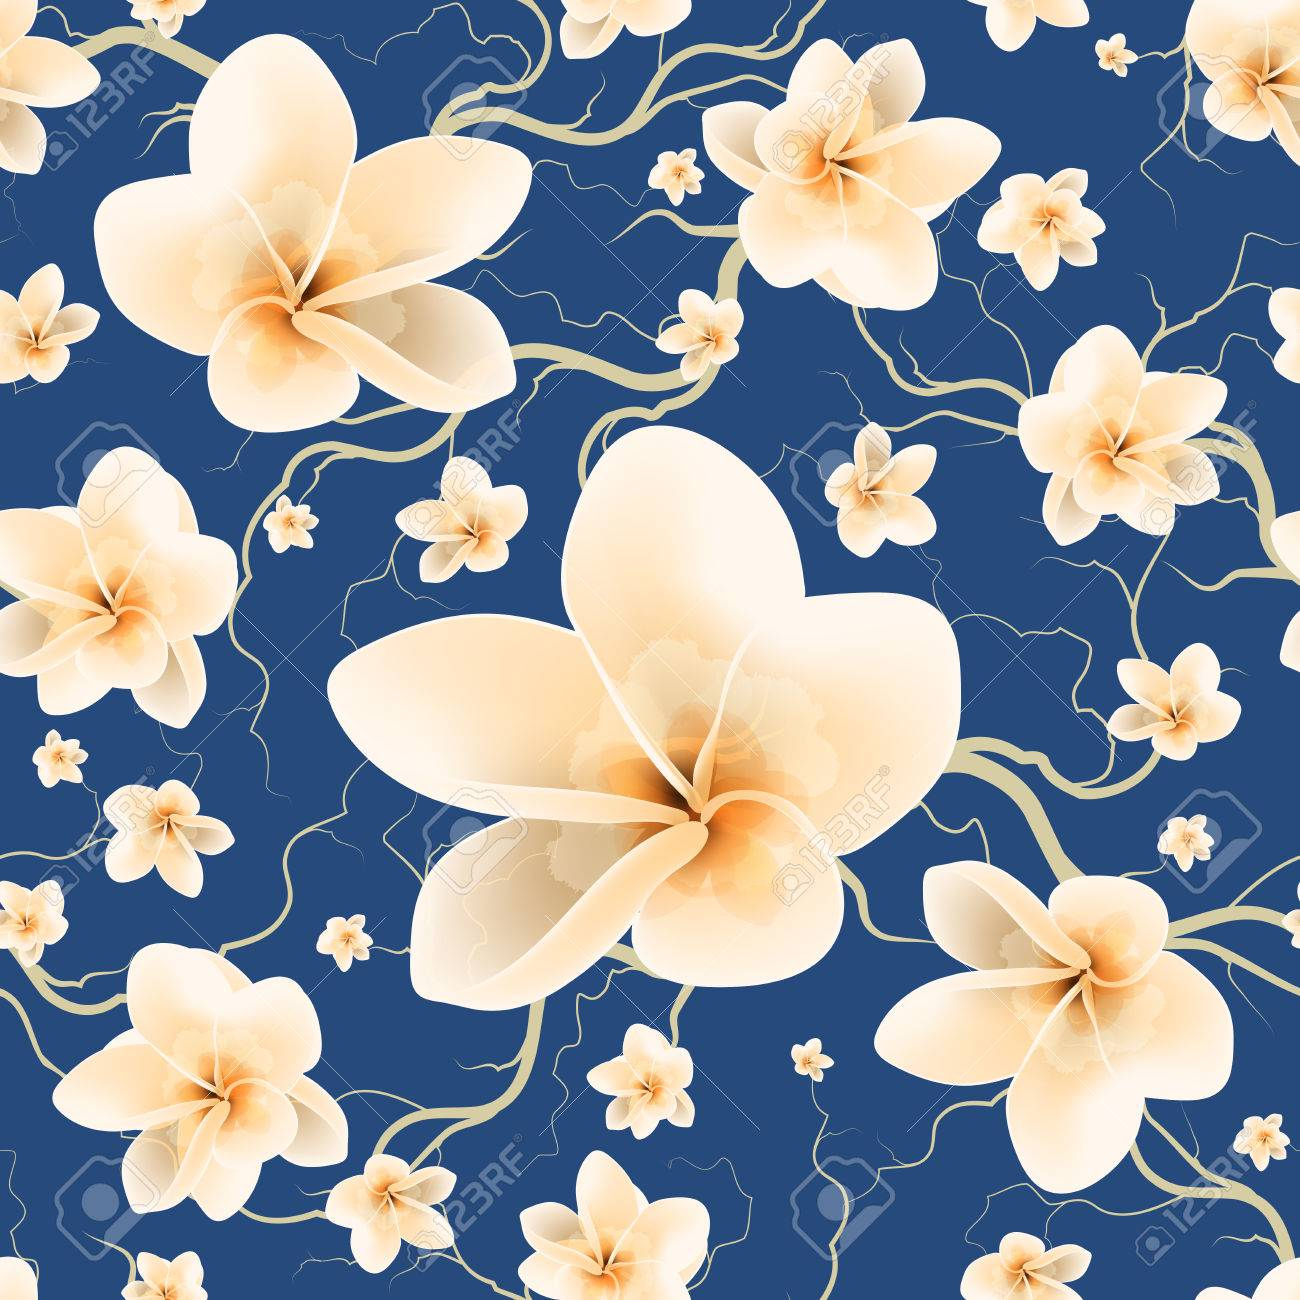 Floral Seamless Pattern With Branch And Spring Flowers - 76890357